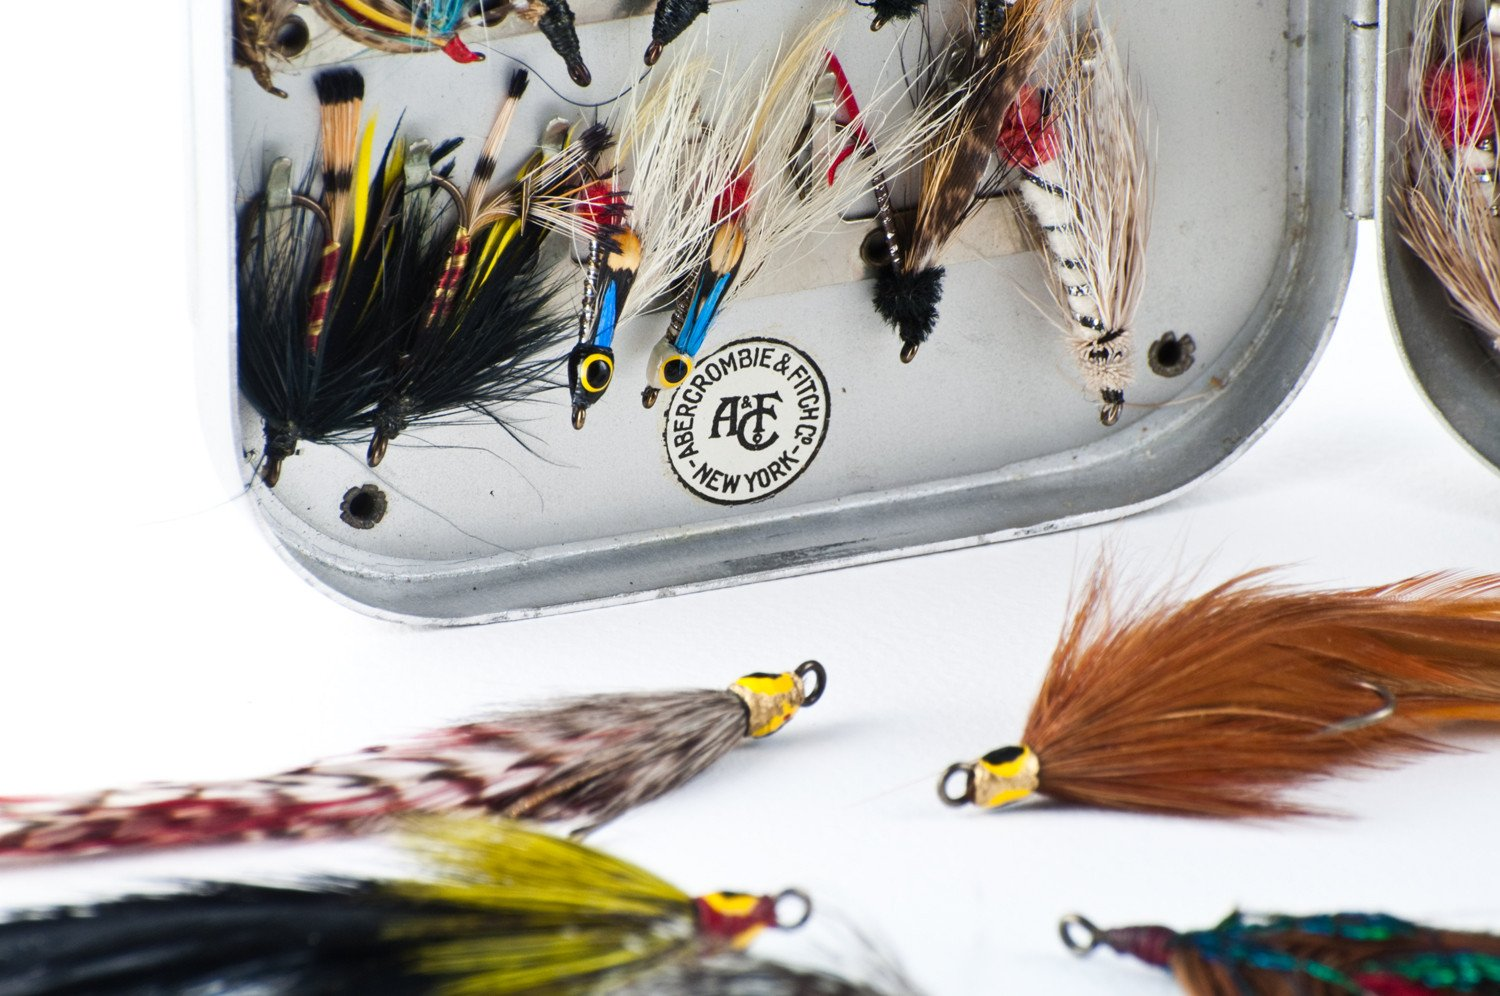 Wheatley Fly Box / Abercrombie & Fitch - with salmon flies